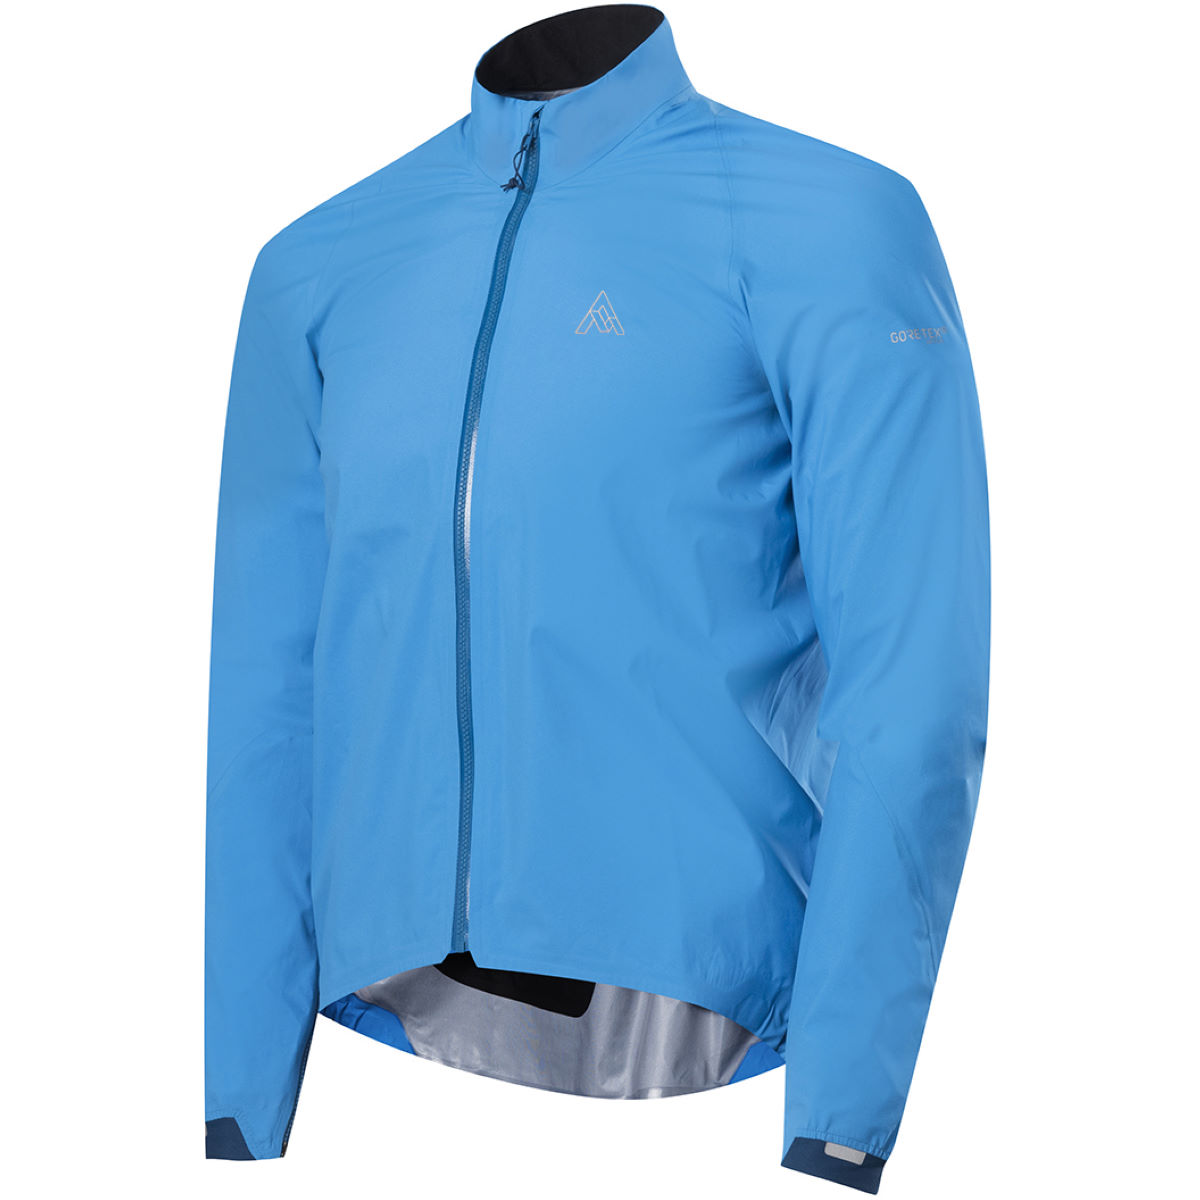 7Mesh Renegade Jacket - Impermeables - ciclismo